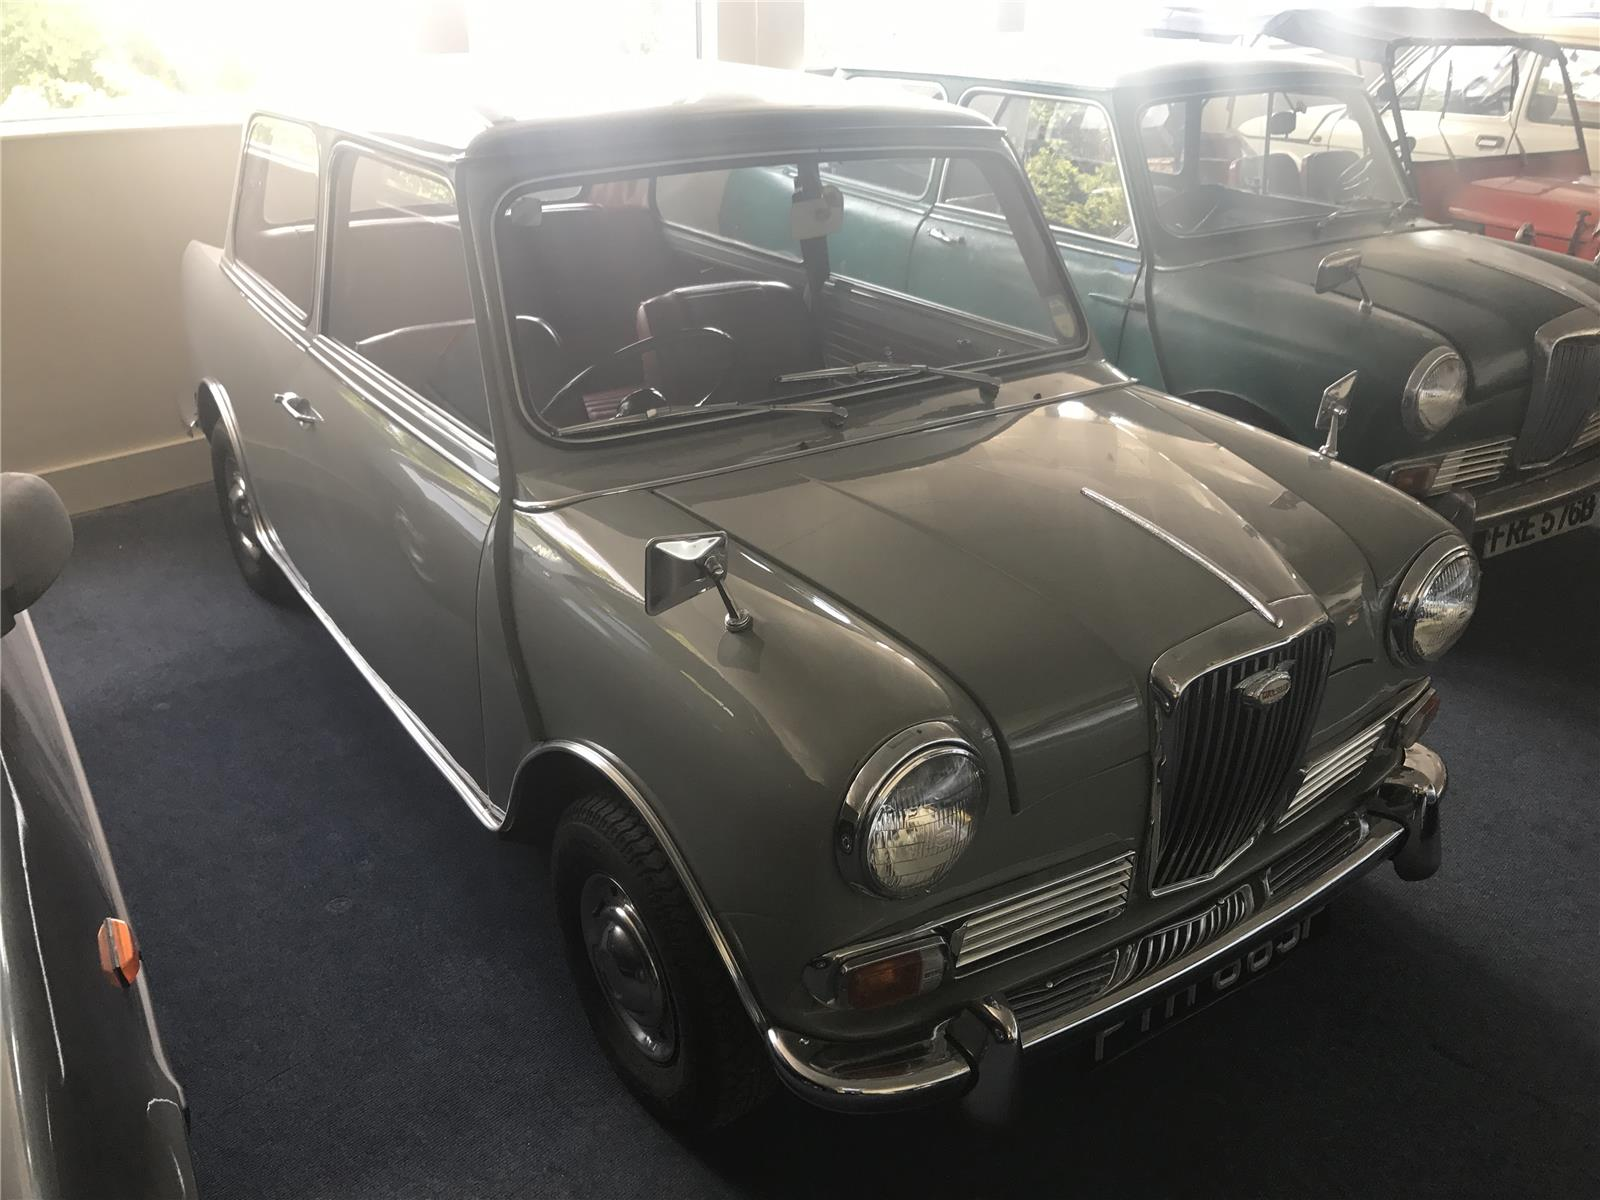 1968 WOLSELEY HORNET 1 2 DOOR SALOON